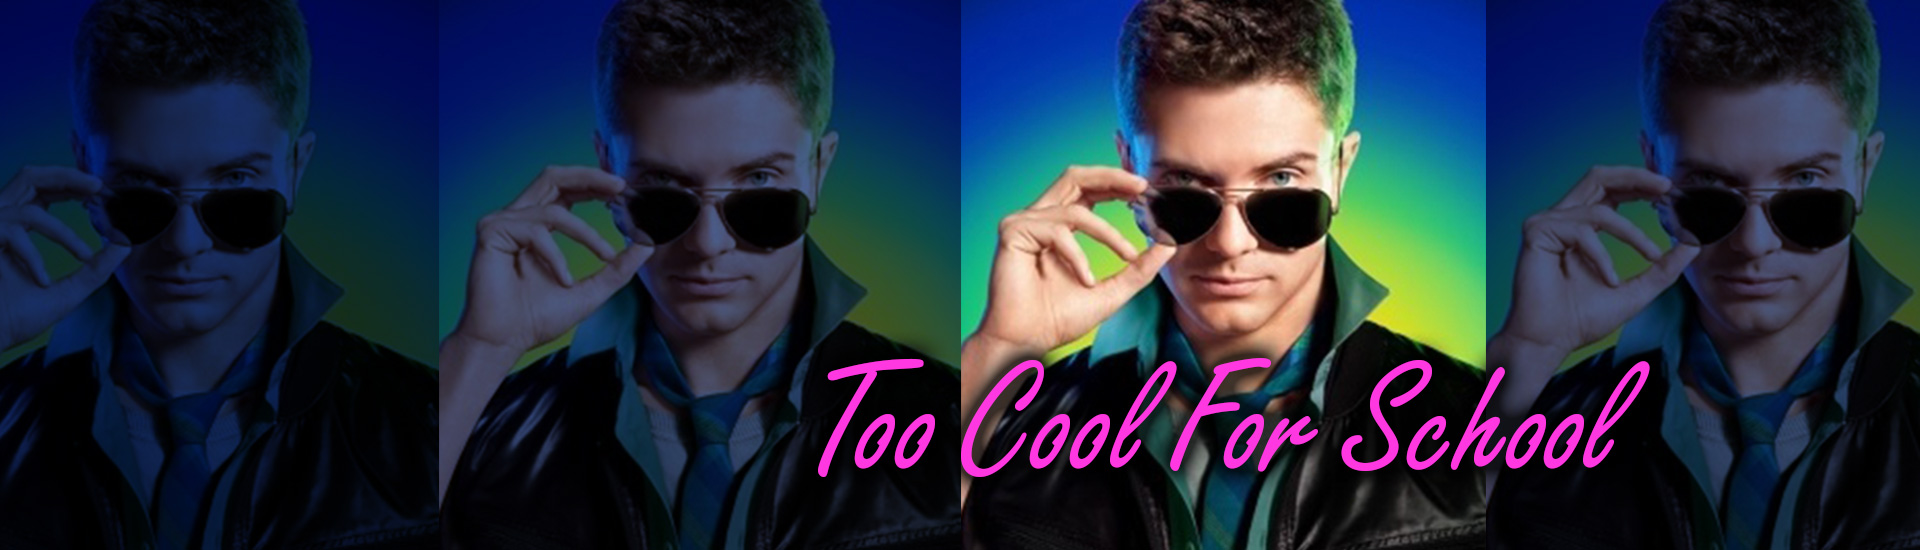 Too Cool for School | by Nicholas Martin Johnson